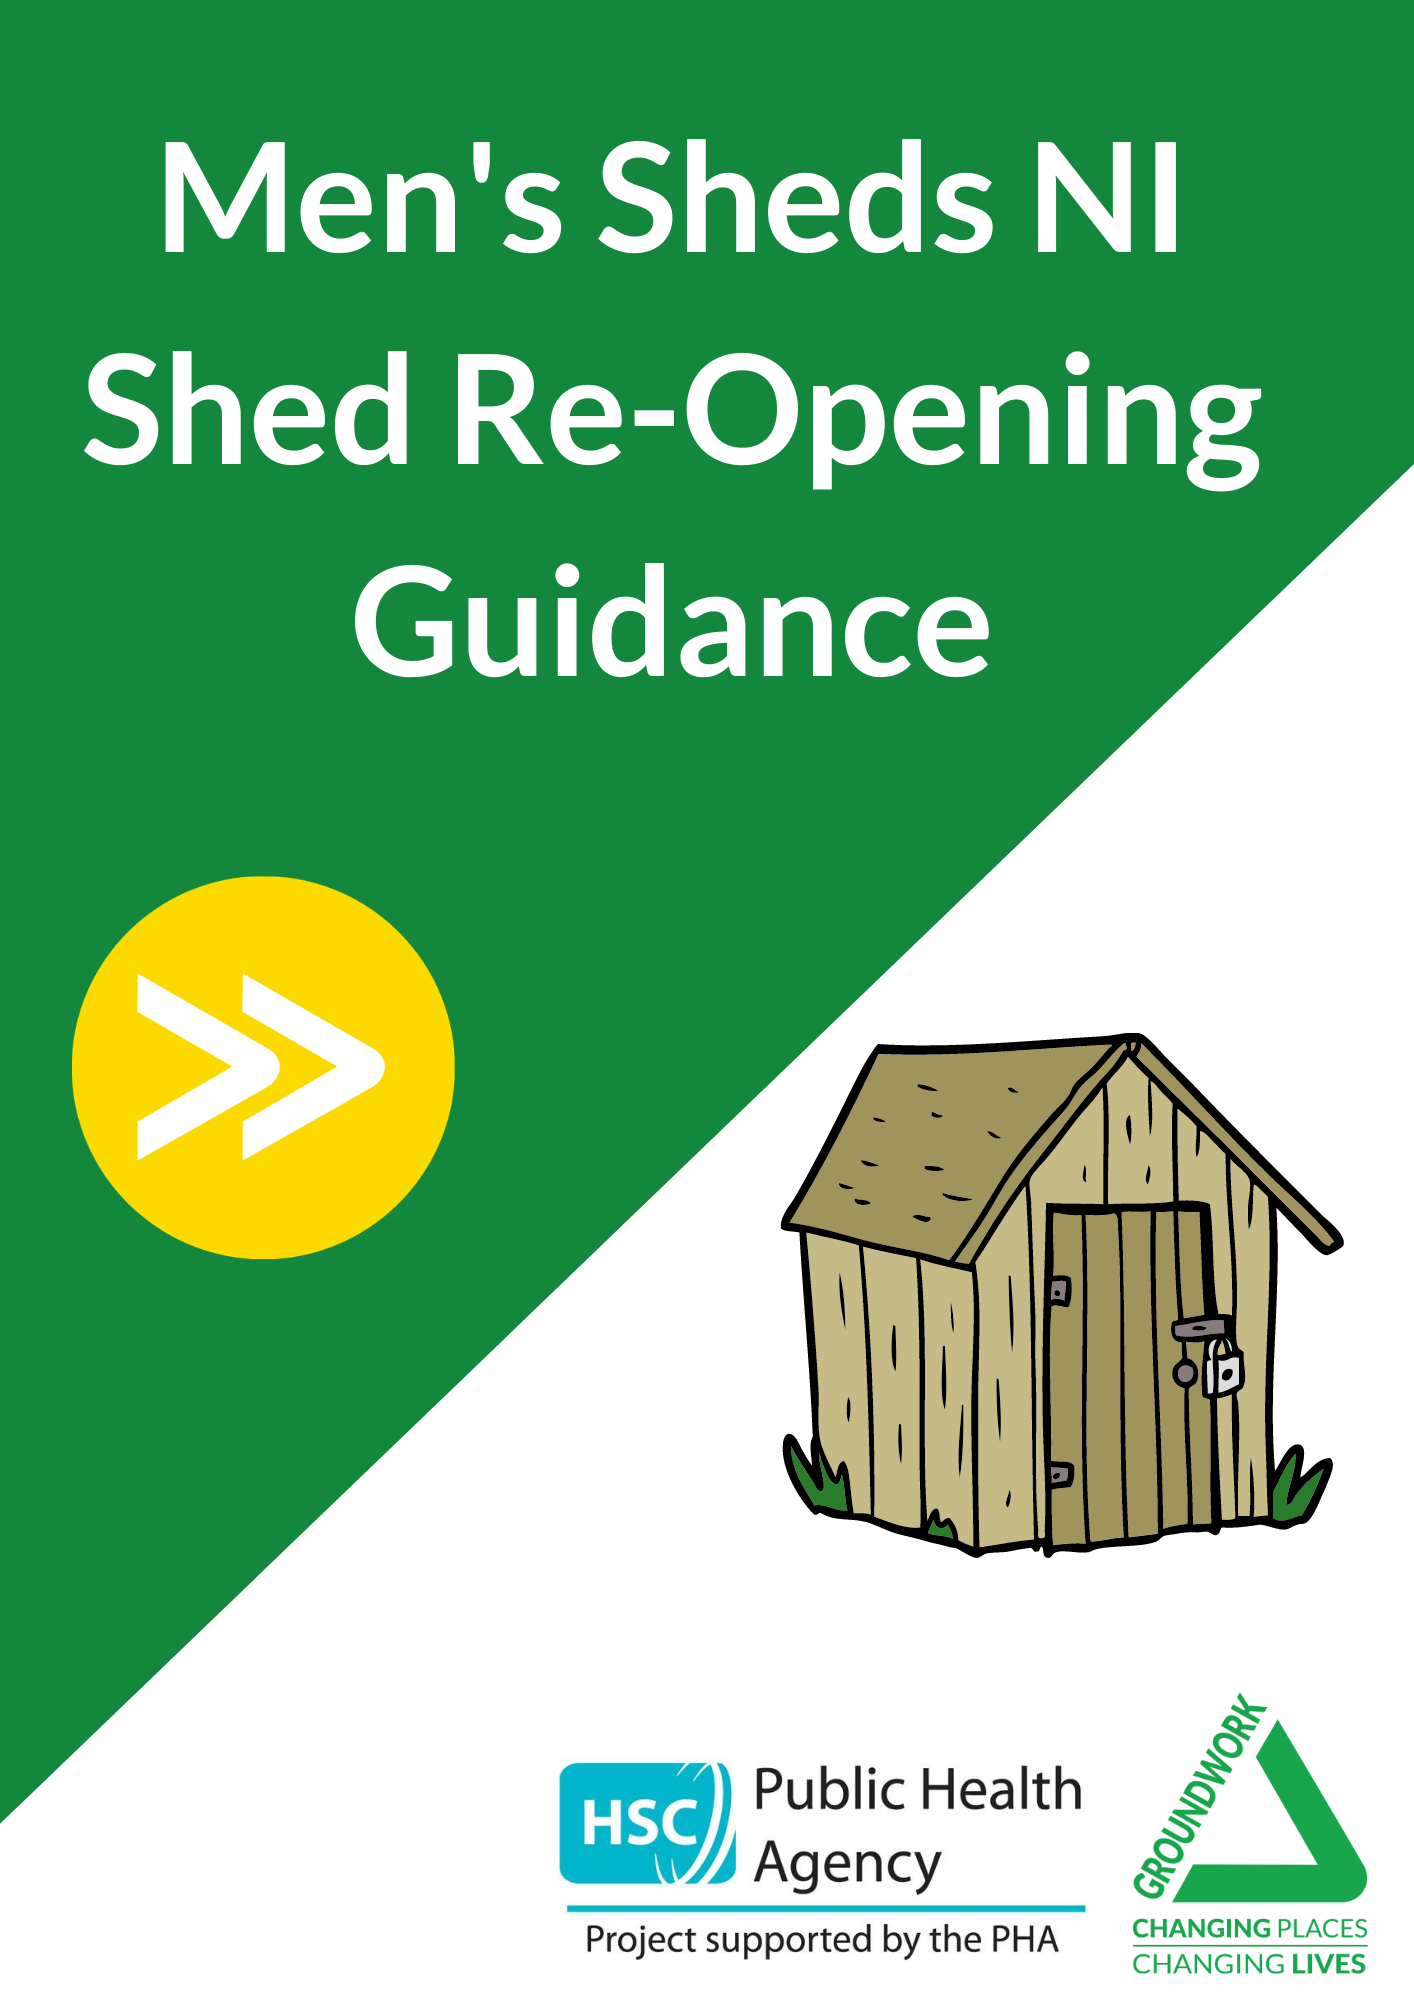 Men's Shed Re-Opening Guidance